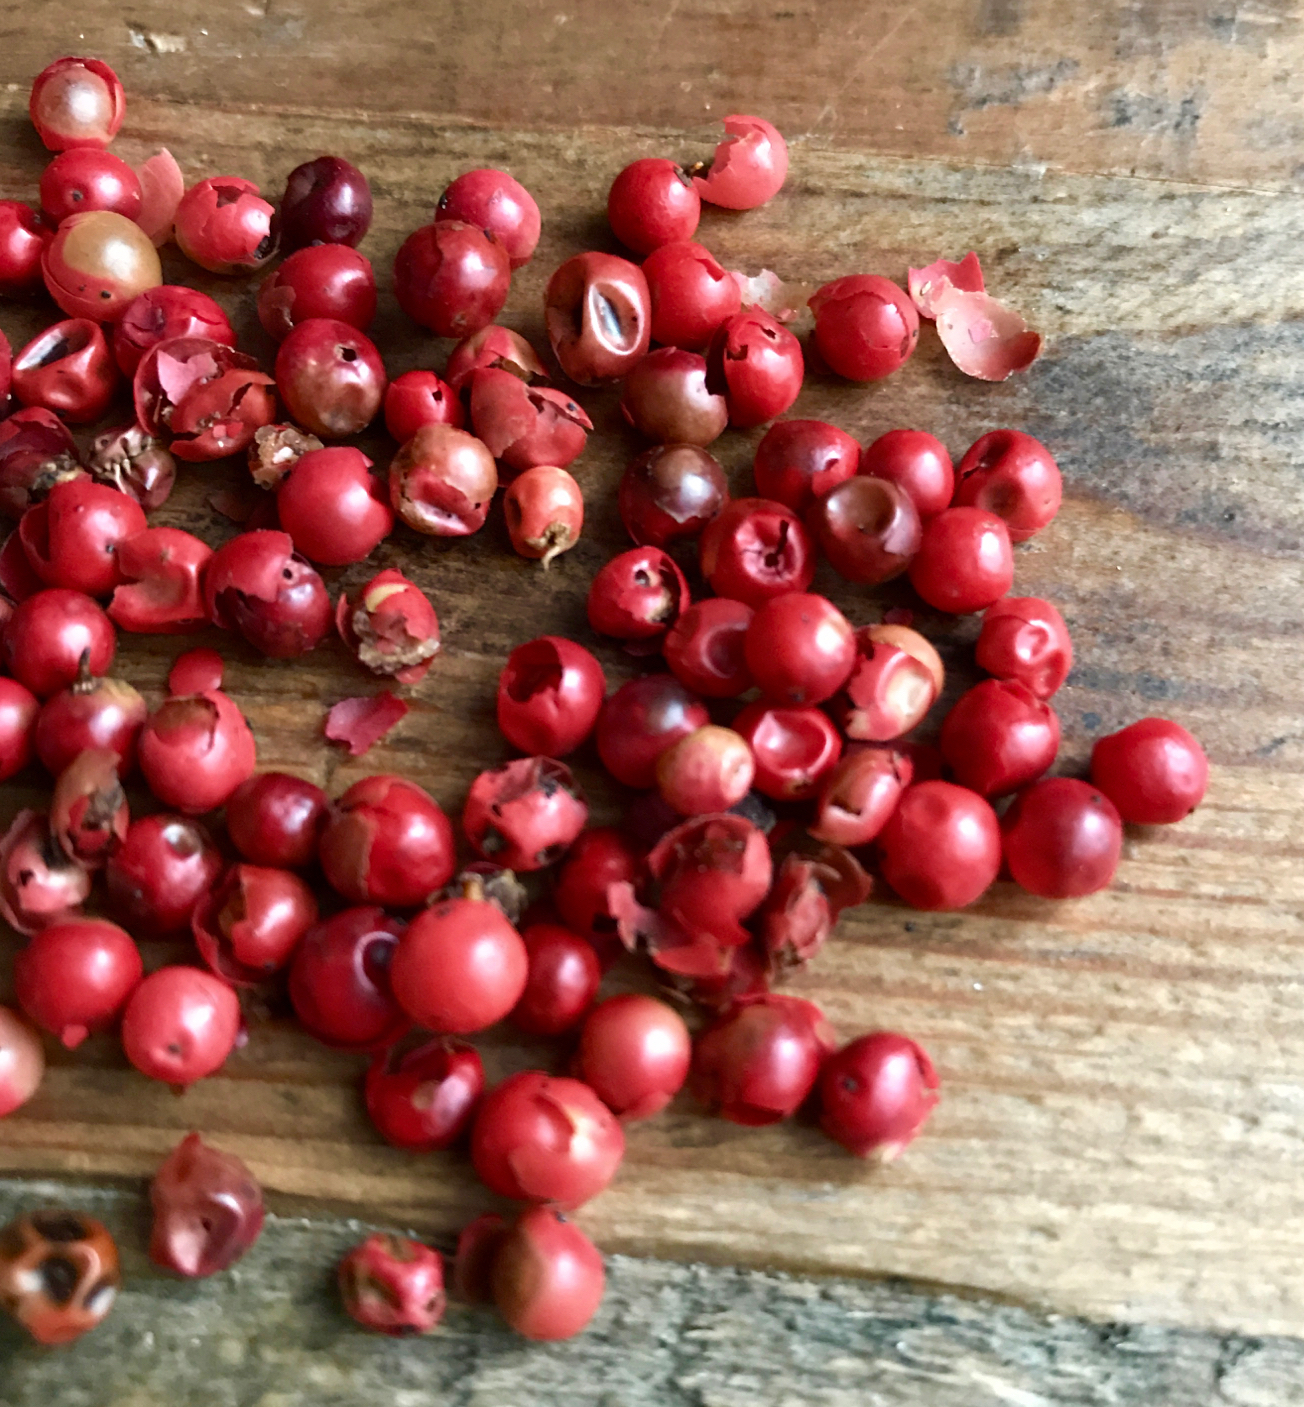 Technically a dried fruit, pink peppercorn imparts a nice bright, subtly sweet peppery-ness.